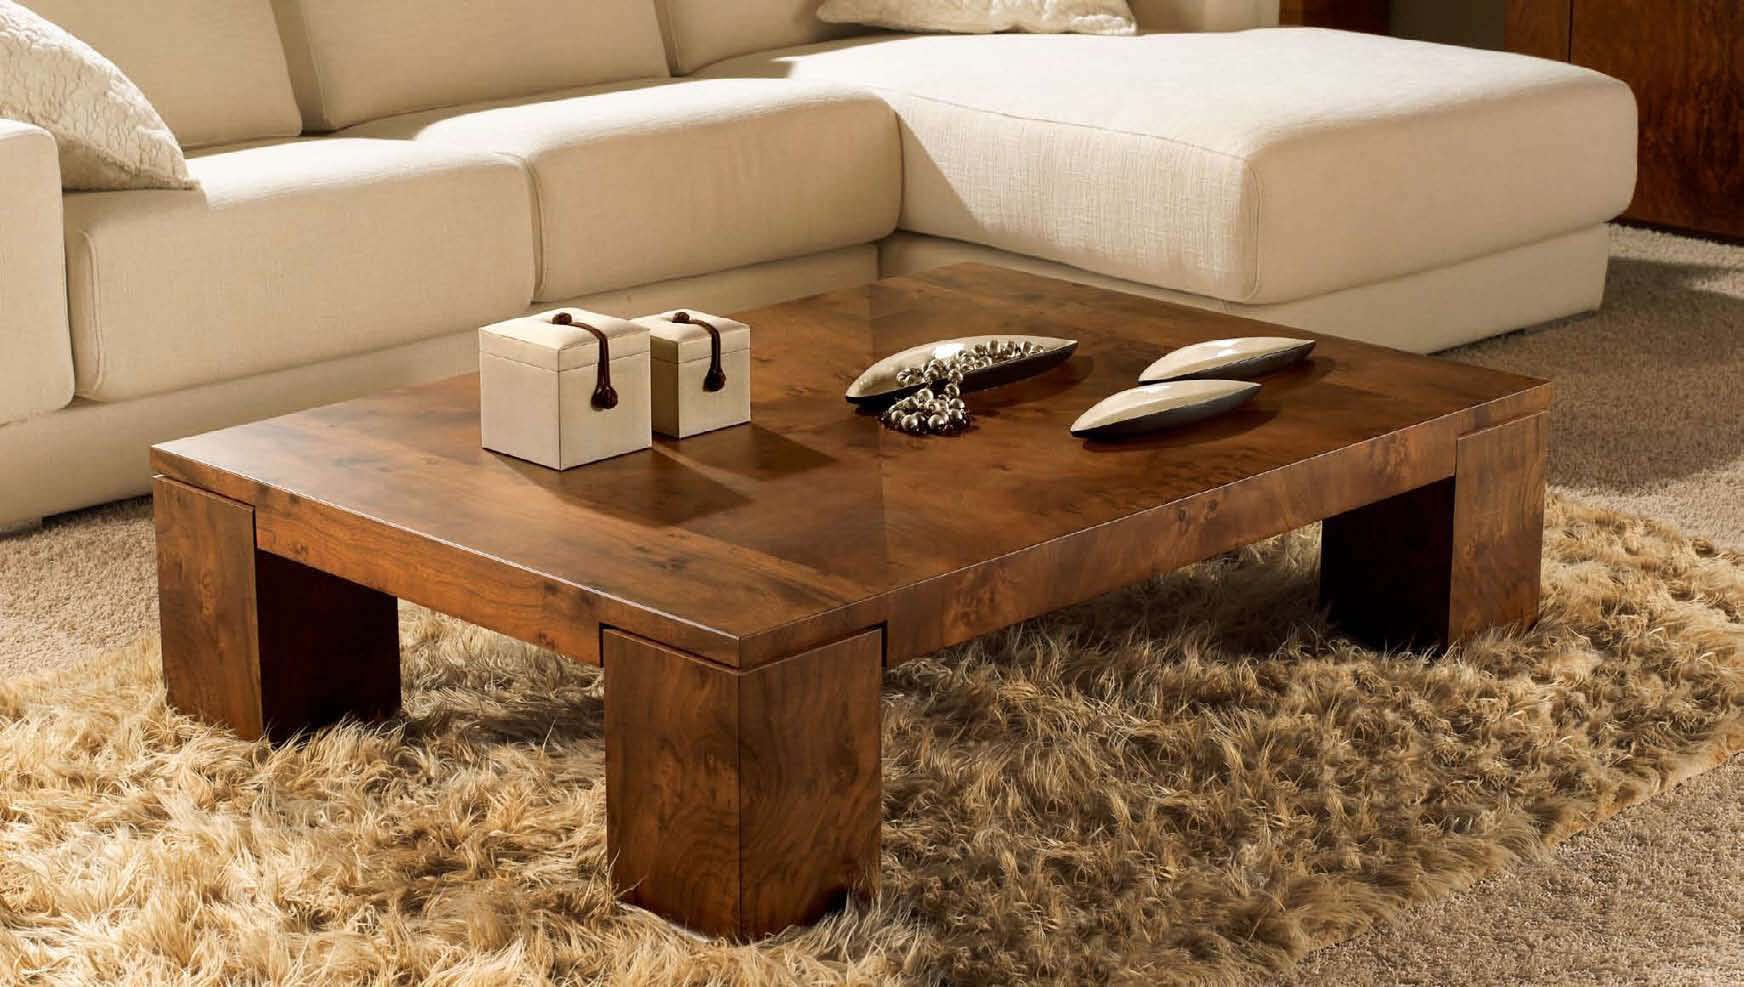 Solid Oak Coffee Table For Sale Download Rustic Coffee Table Solid Wood 3 N Wood Coffee Table Design Solid Wood Coffee Table Coffee Table Plans